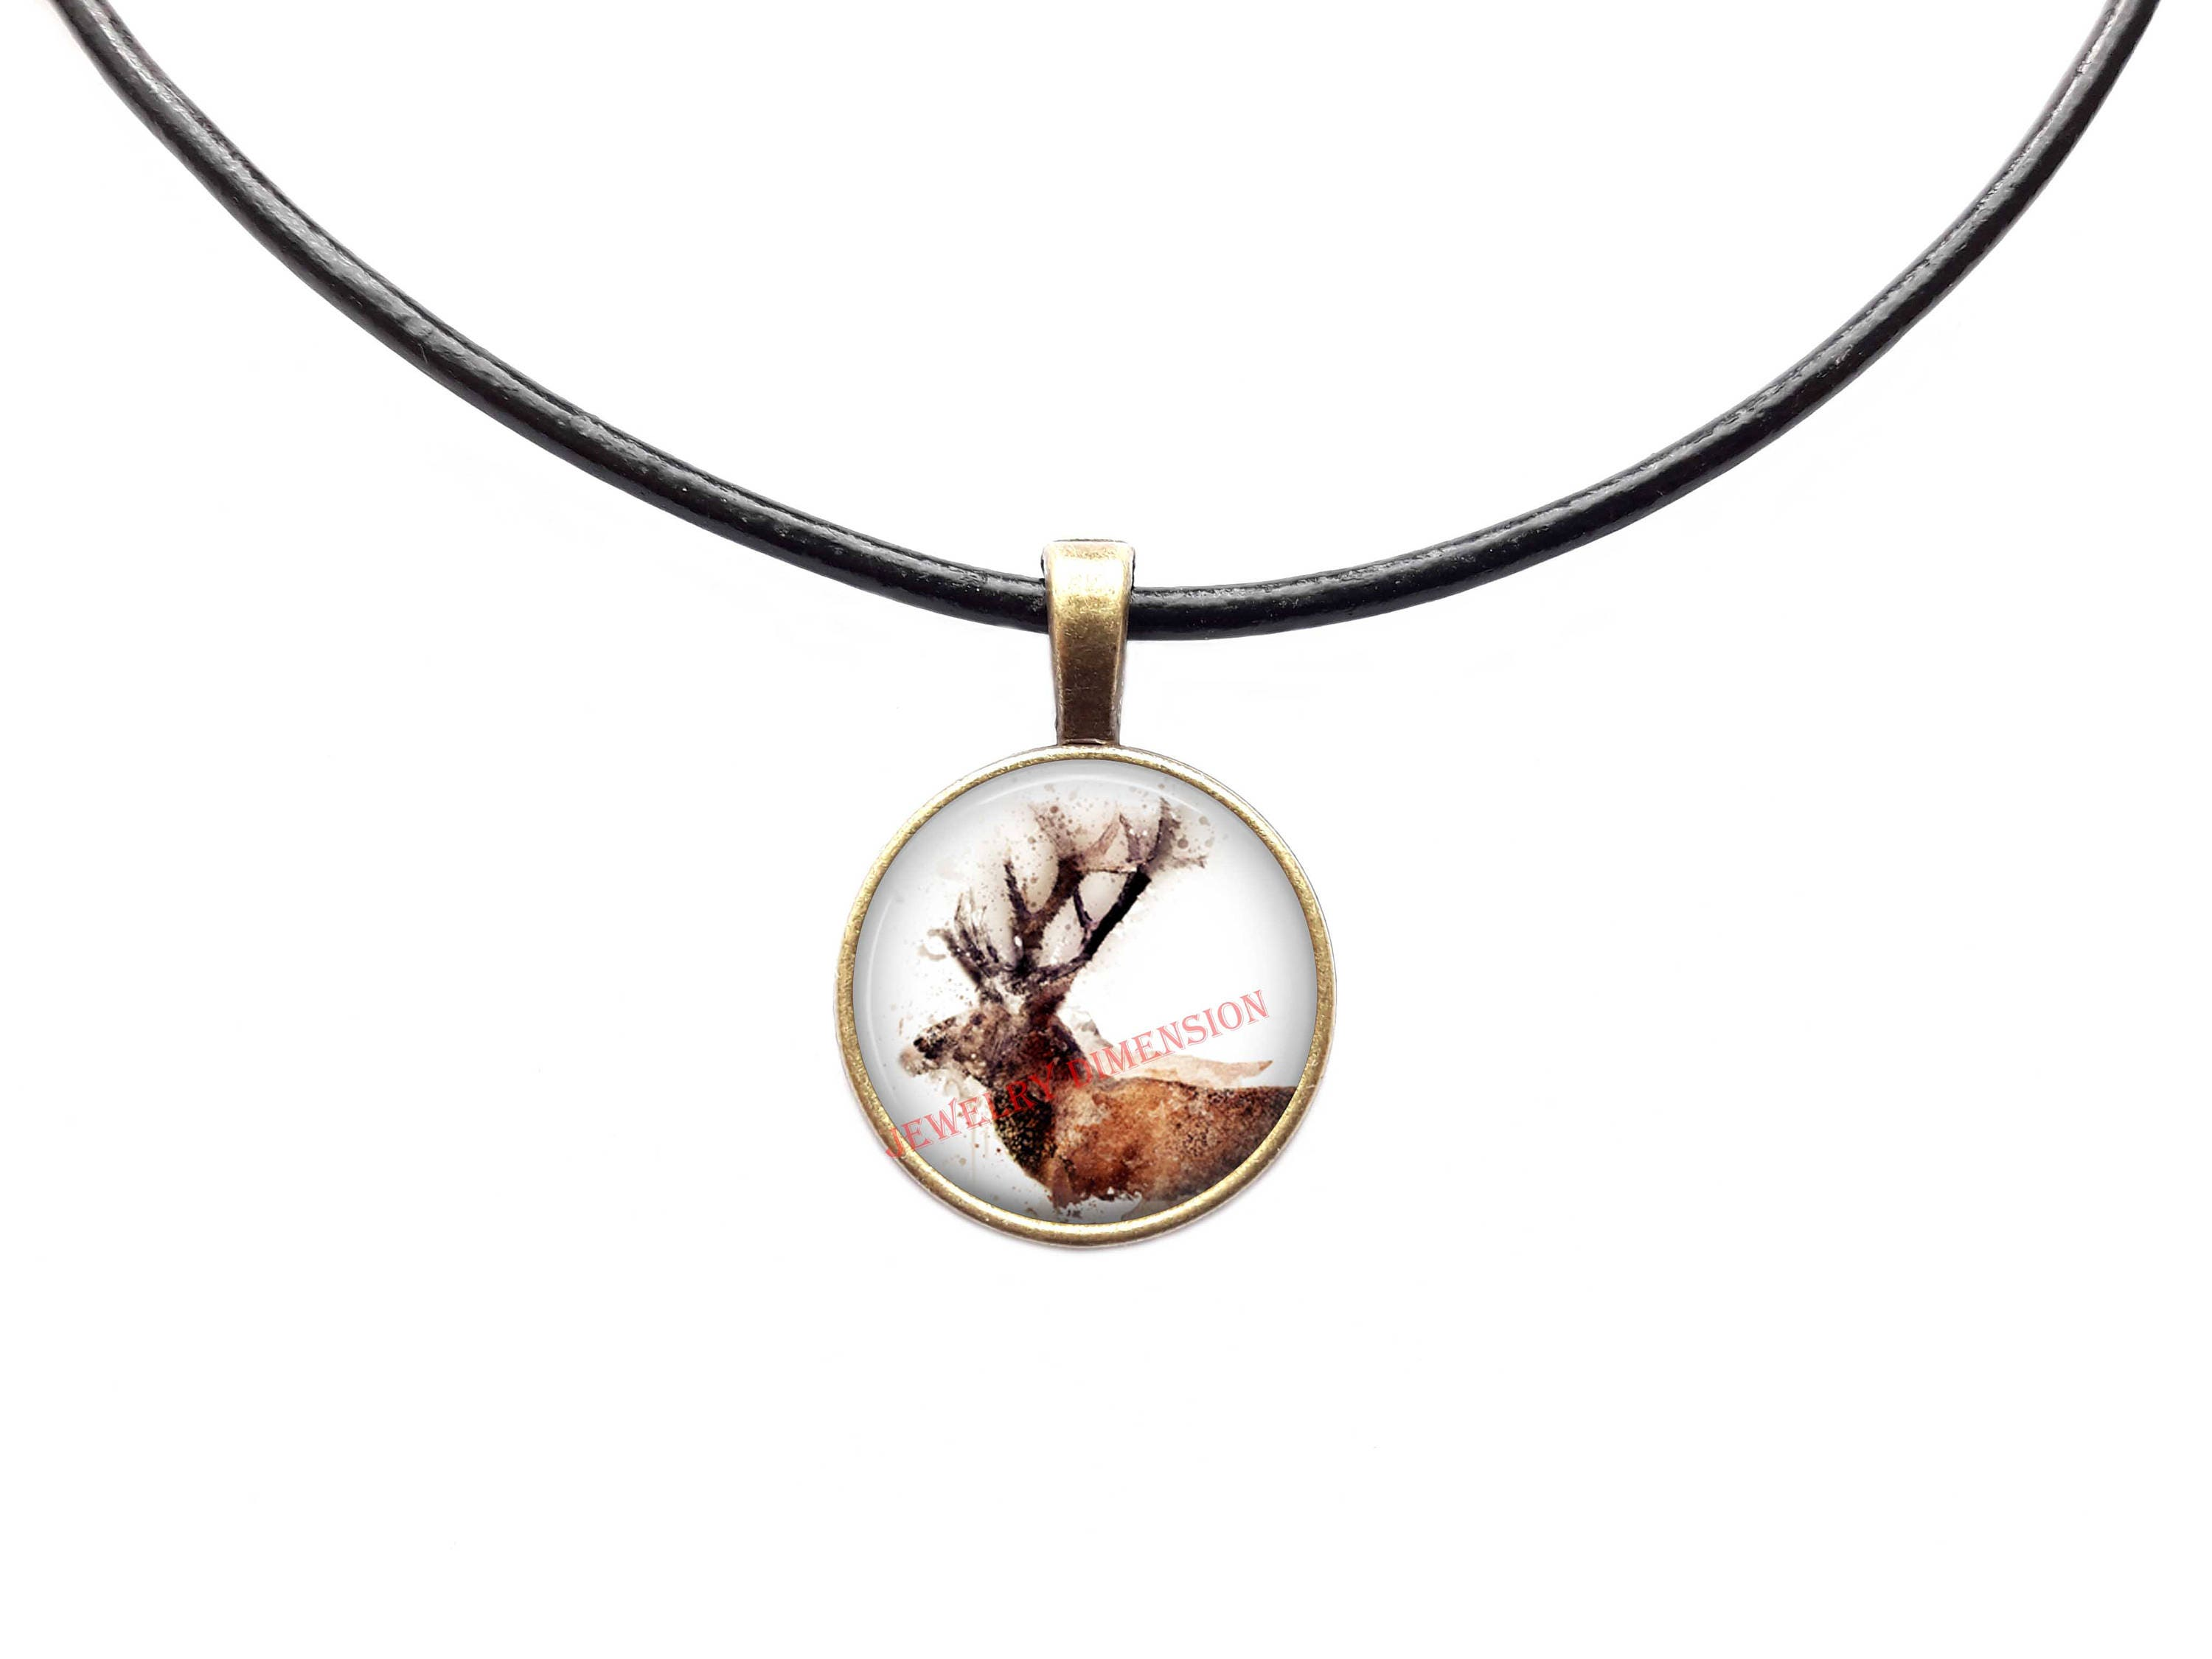 cascade chandelier whitetail horn endless photography pendant deer cast designs antler product